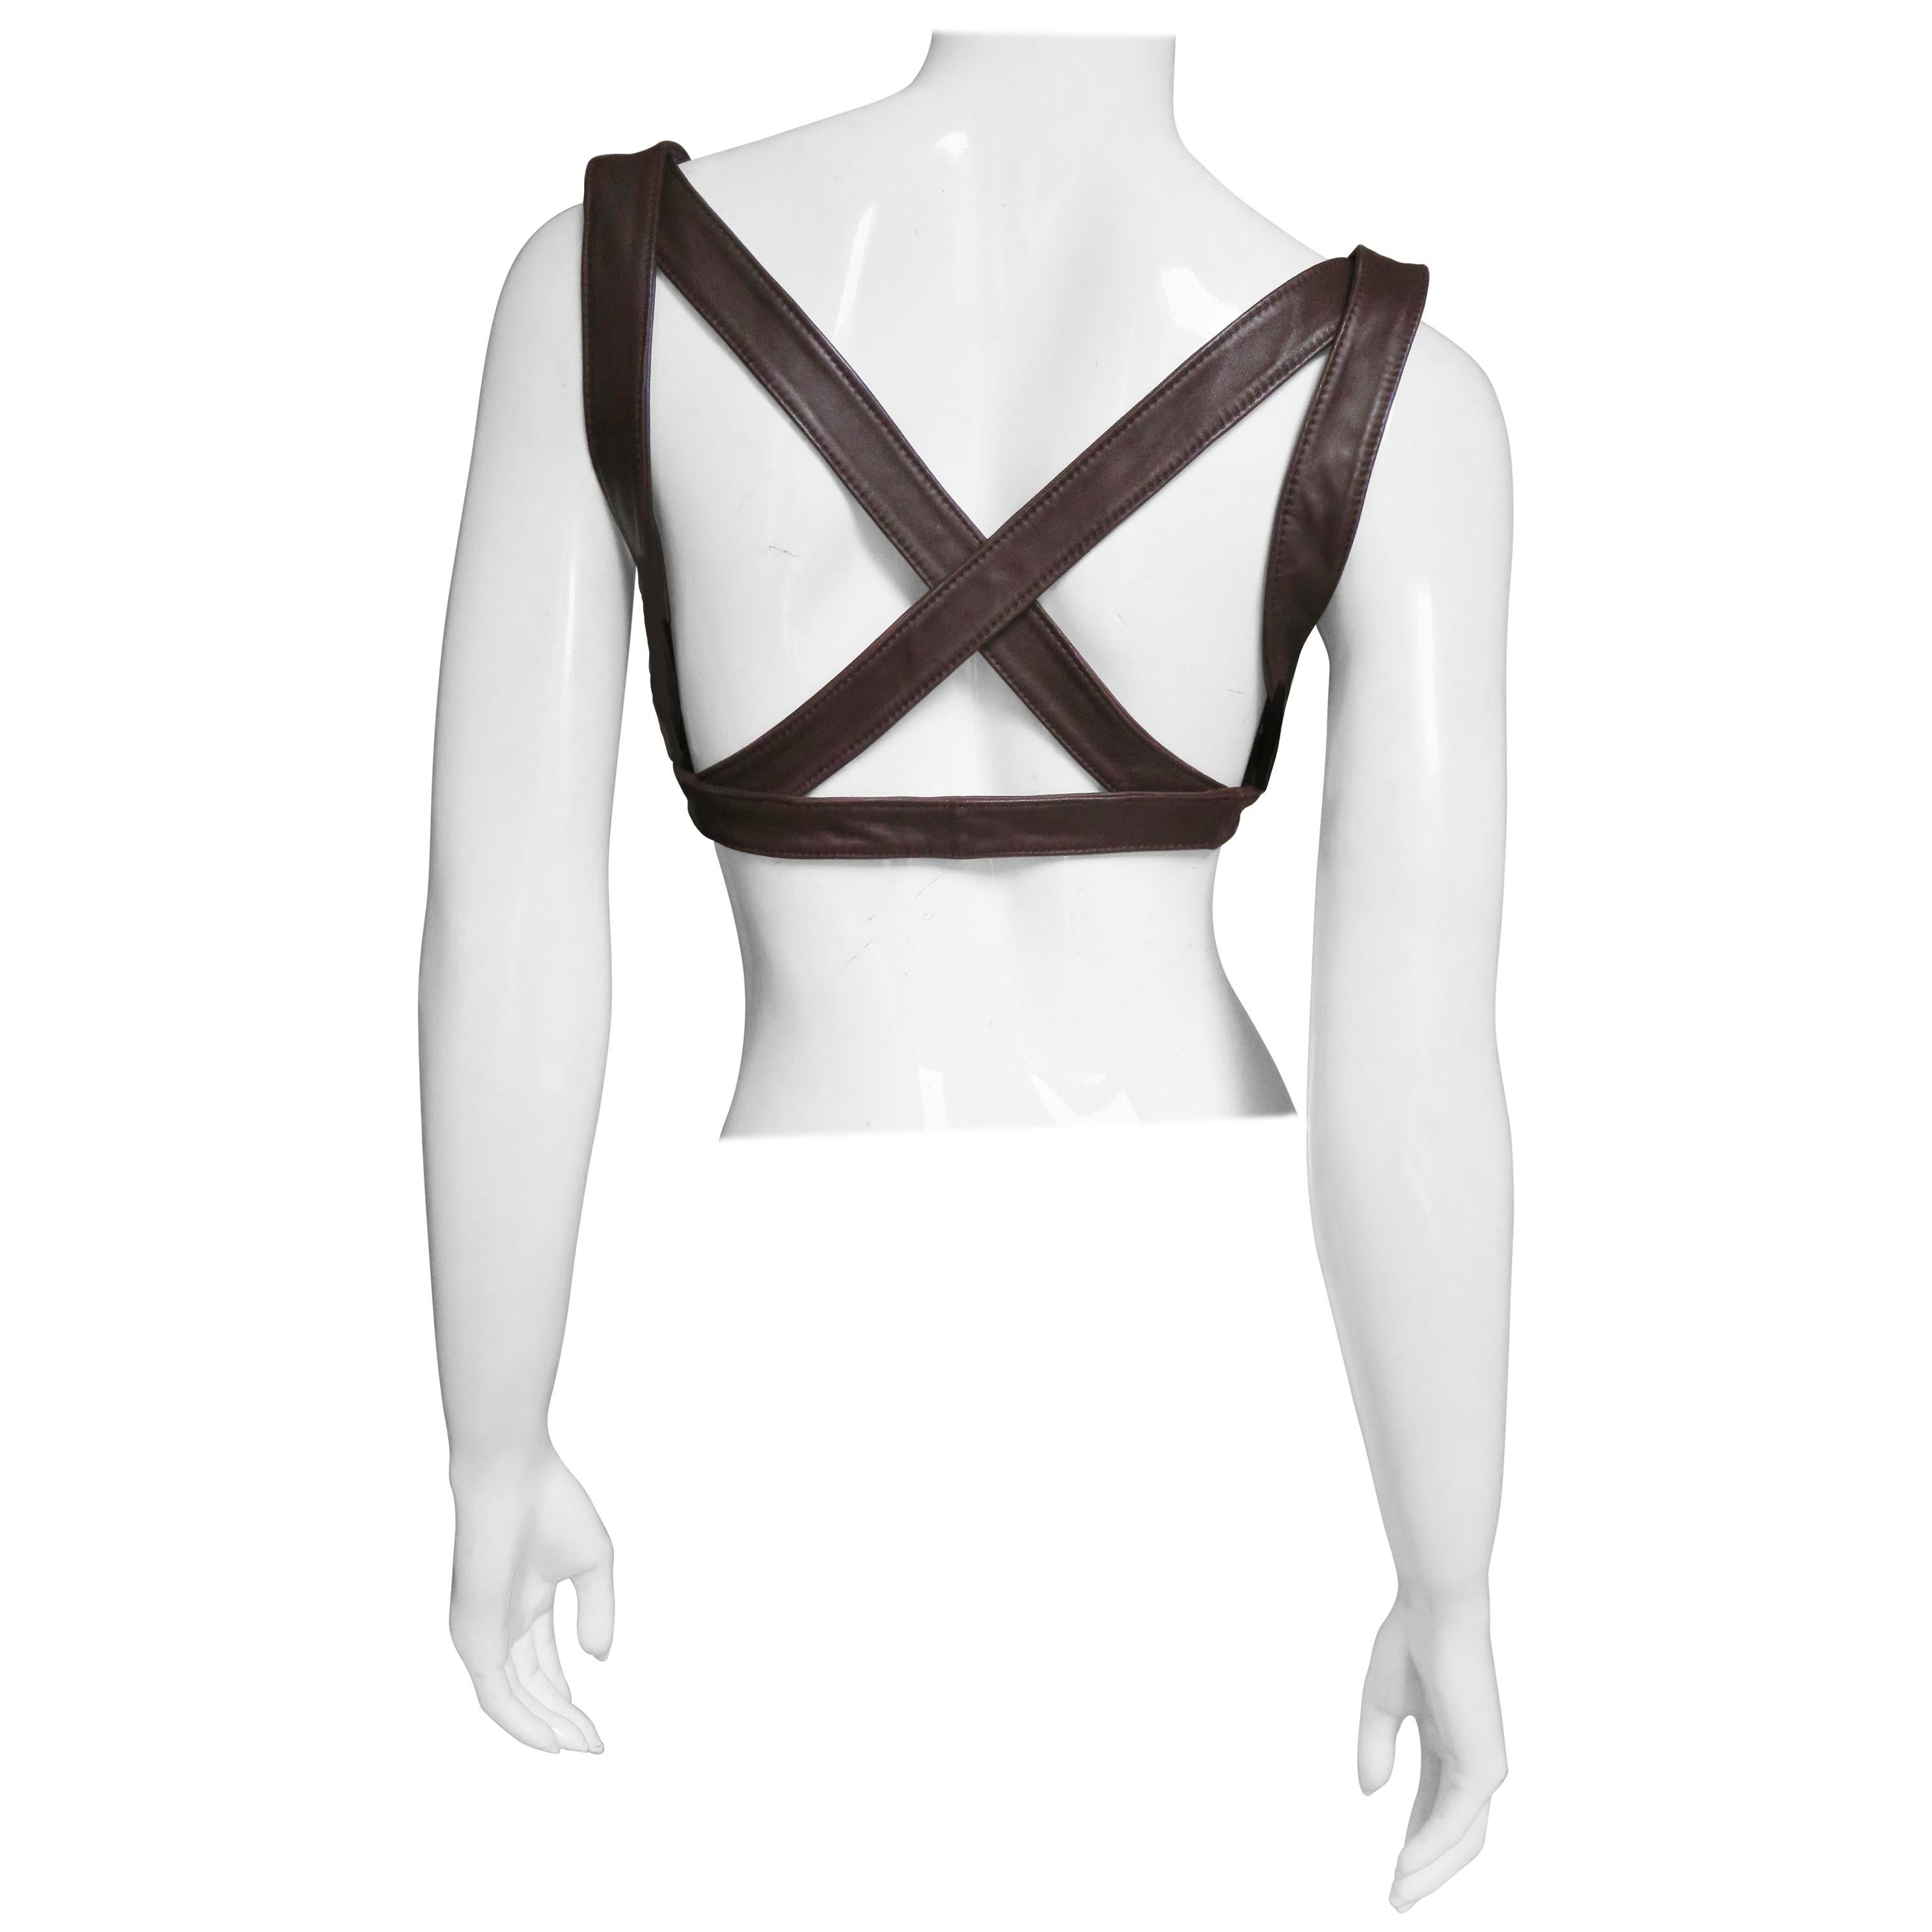 Krizia Leather Harness Top 1980s